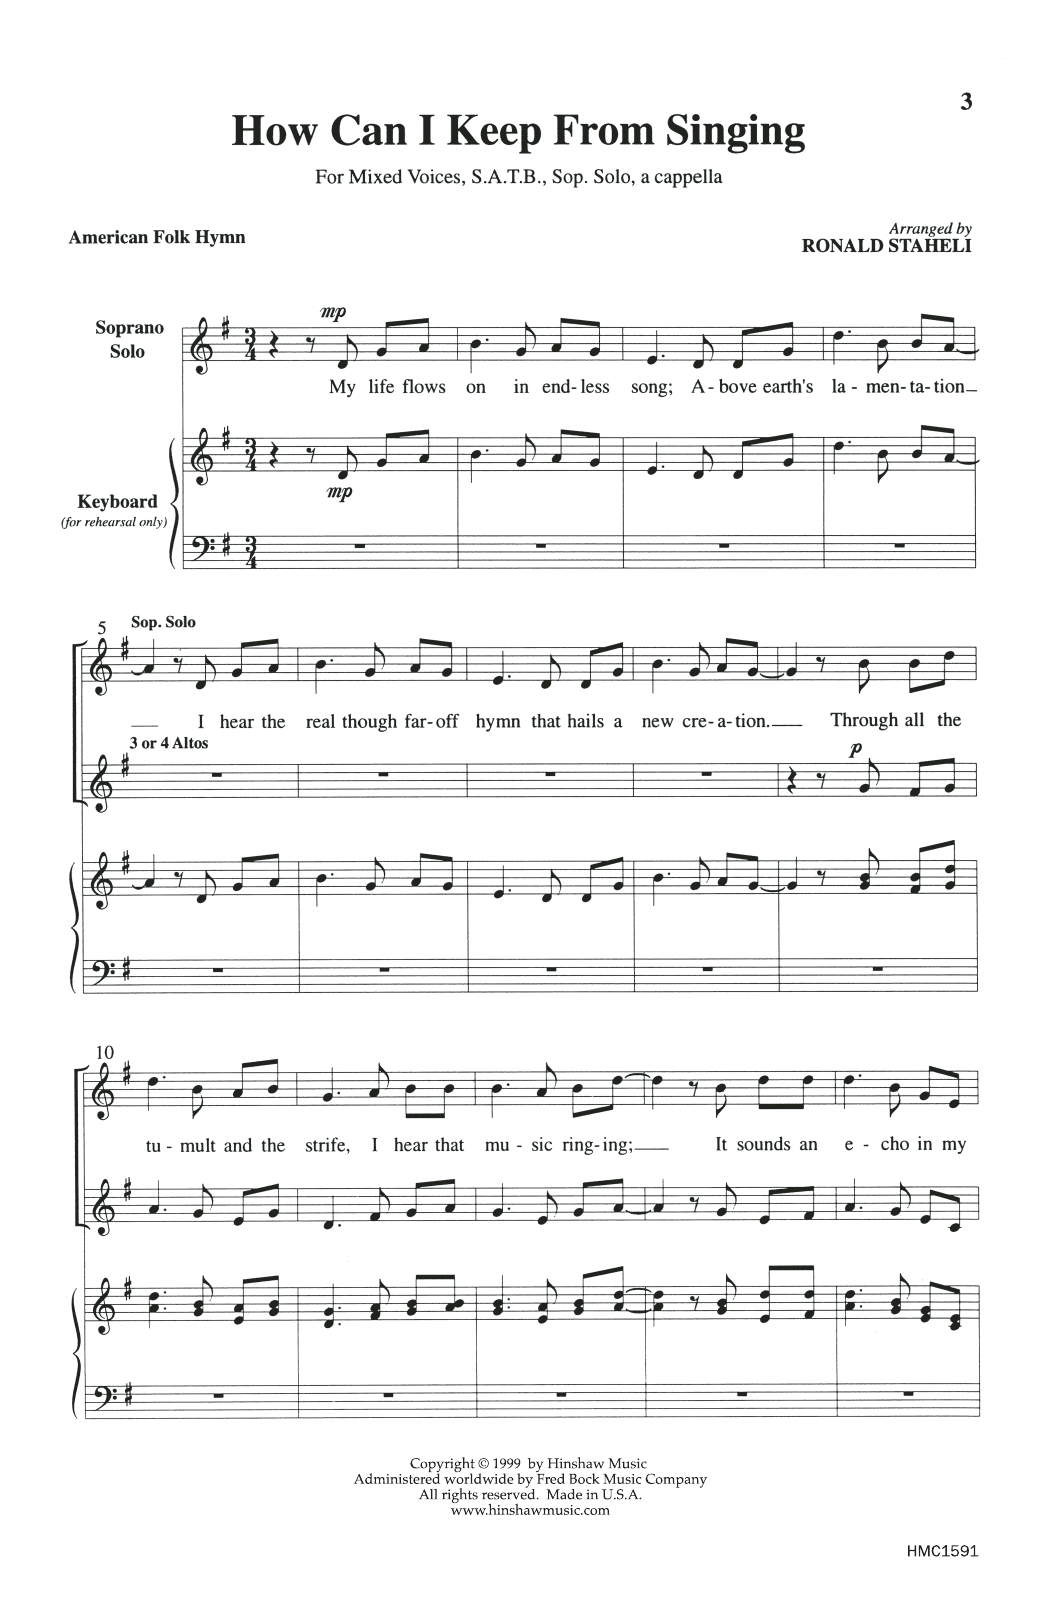 American Folk Hymn How Can I Keep From Singing (arr. Ronald Staheli) sheet music notes and chords. Download Printable PDF.